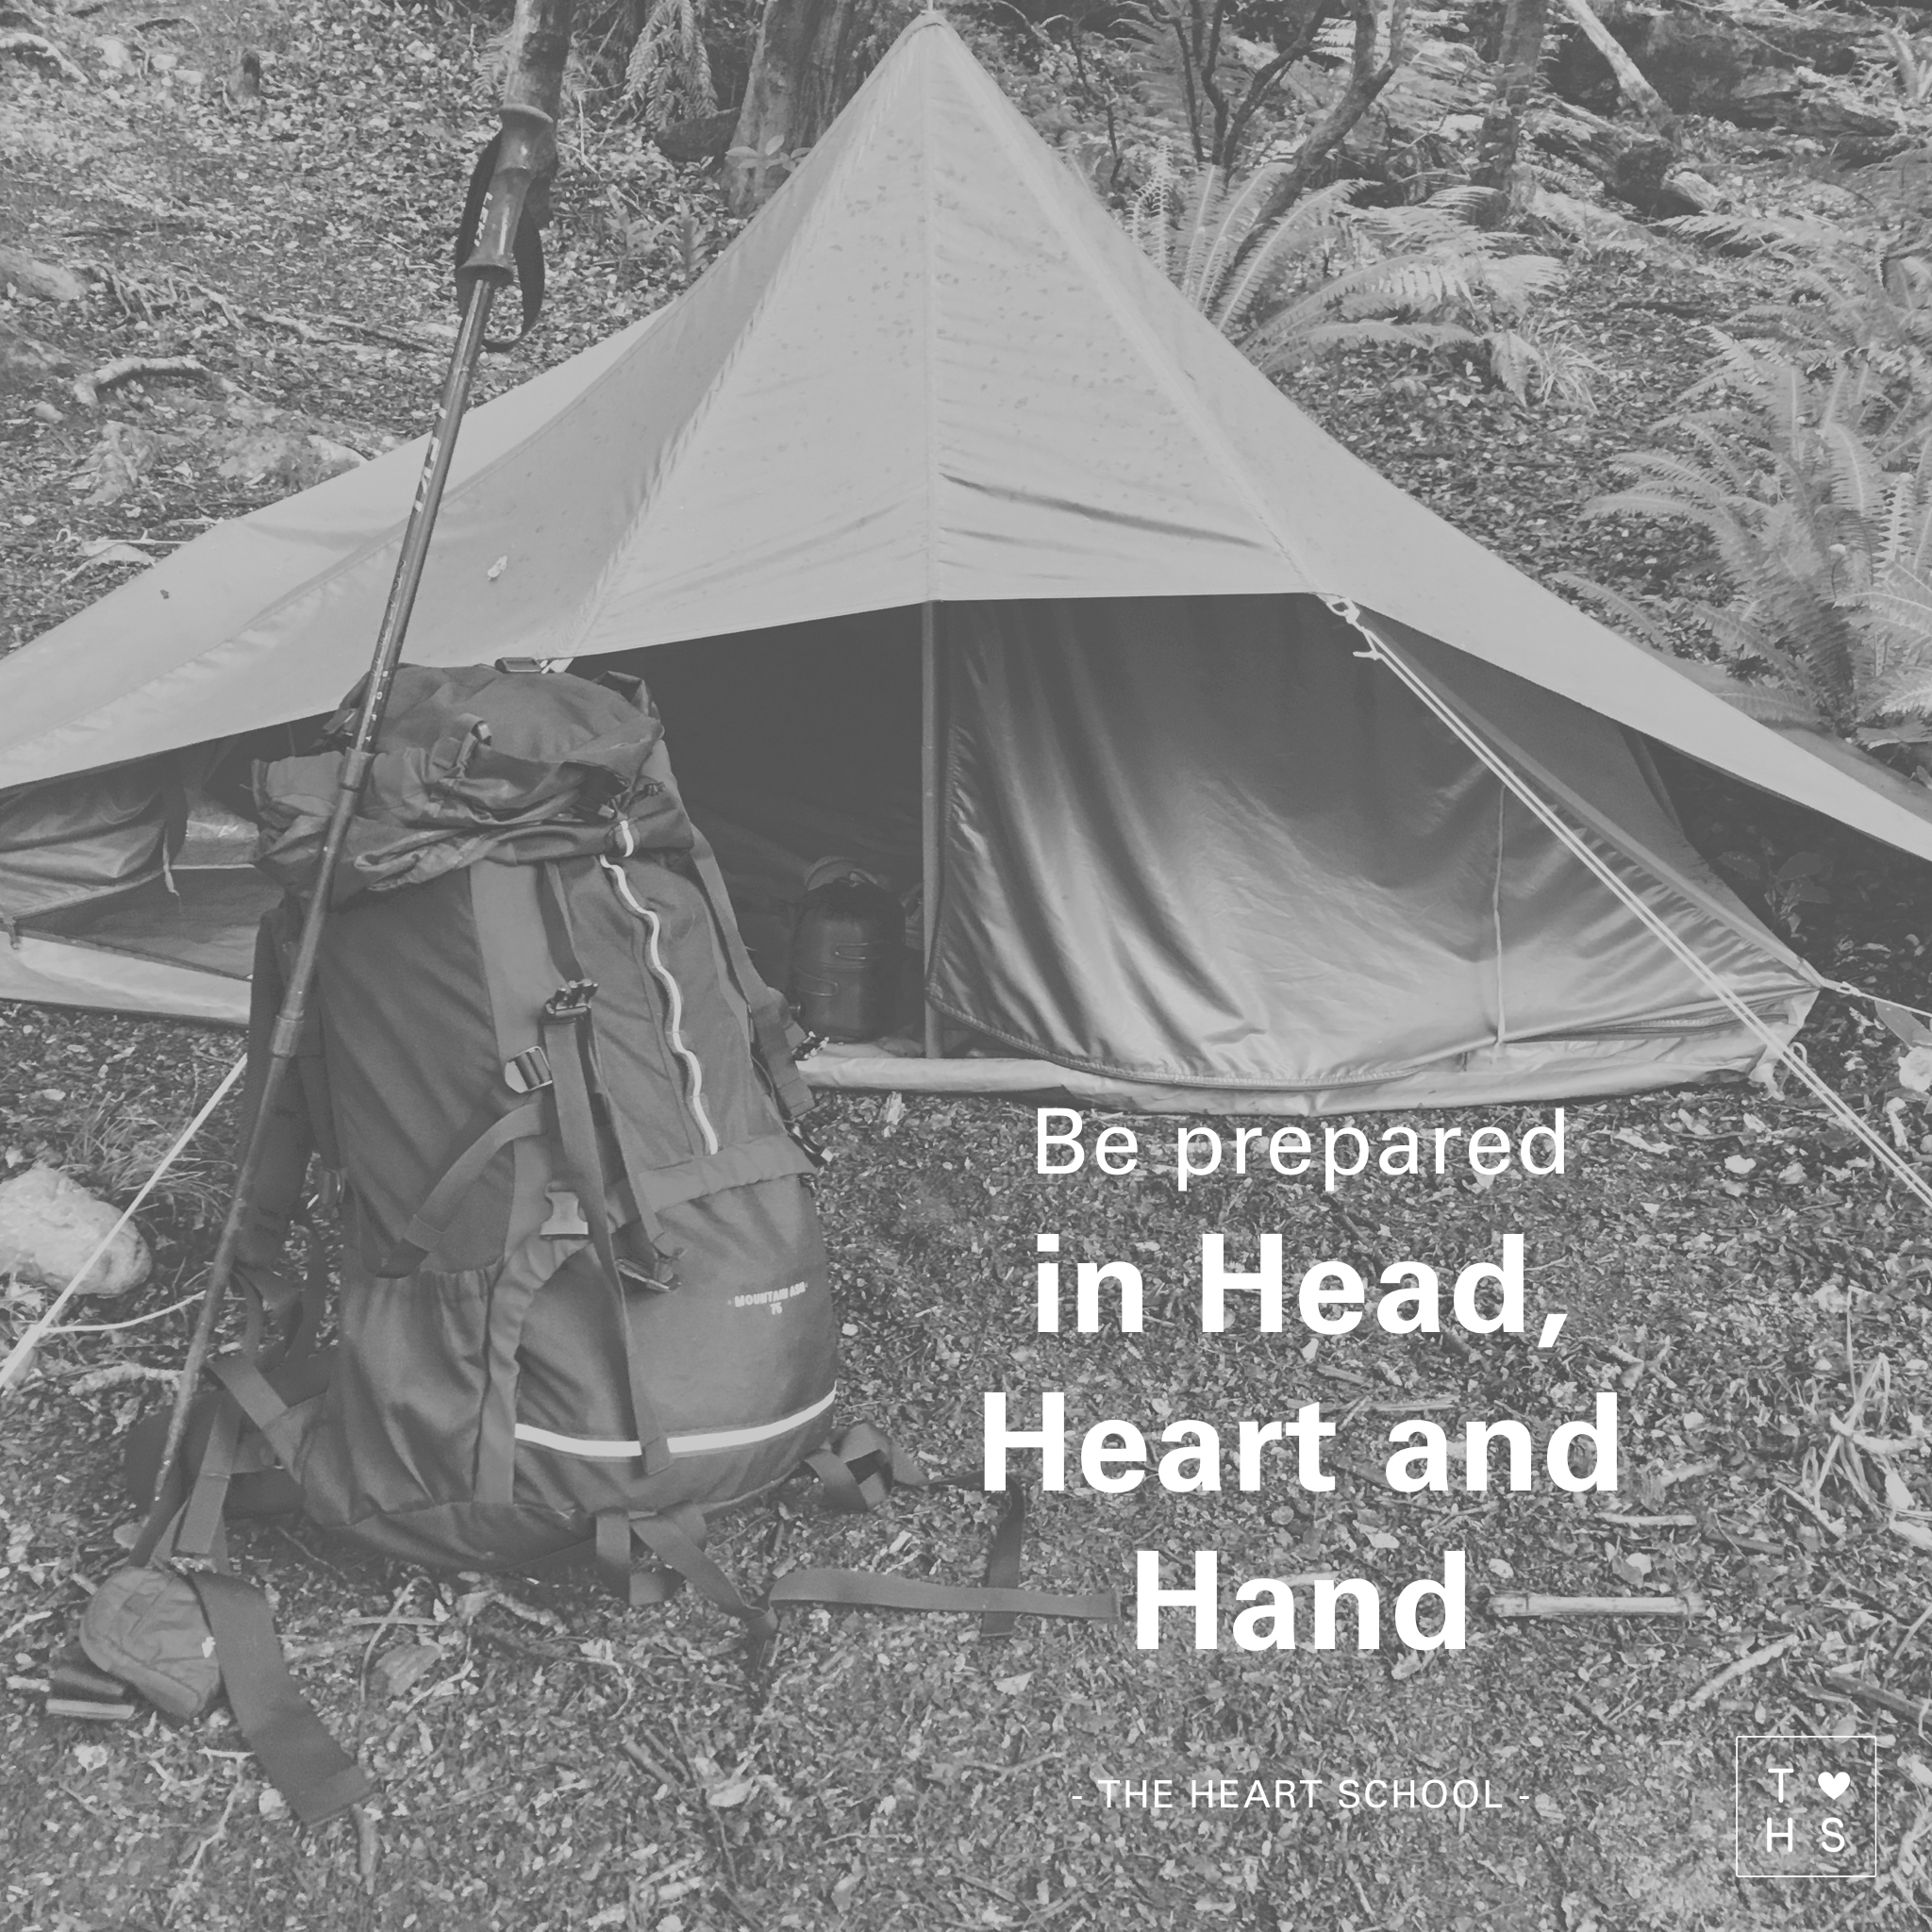 "Last weekend I went camping in the bush. I have to admit I was a bit nervous in the lead up. The weather had taken a turn, daylight was much shorter, and I had not previously met the other campers. I was going bush with a group of strangers. Then I remembered our mantra at work... preparation in the head, the heart and the hand. Why not apply this in my personal life?  I started with the head. It was going to be 7 degrees overnight and some rain was expected. That's crucial information when you are heading into the bush.  Next I moved to the hand. Cold and rain meant digging up my merinos, packing my rain gear and bringing my down sleeping bag. Those are important items to prepare and pack.  Now I was ready to move to the preparation of the heart. There was an immense cacophony in my head going on; will I be able to do all the tasks, will I meet the expectations, will I like the people I am spending the next two days with, how do I prevent getting lost? Mark Nepo says it beautifully... ""It is the speaking of one's heart that makes a human being human"". I acknowledged the self talk, without judgment, and took a moment of silence. Soon my heart was feeling lighter and more open.  I was ready for a new adventure. Preparation had made all the difference! What can you prepare for in the head, heart and hand today?"